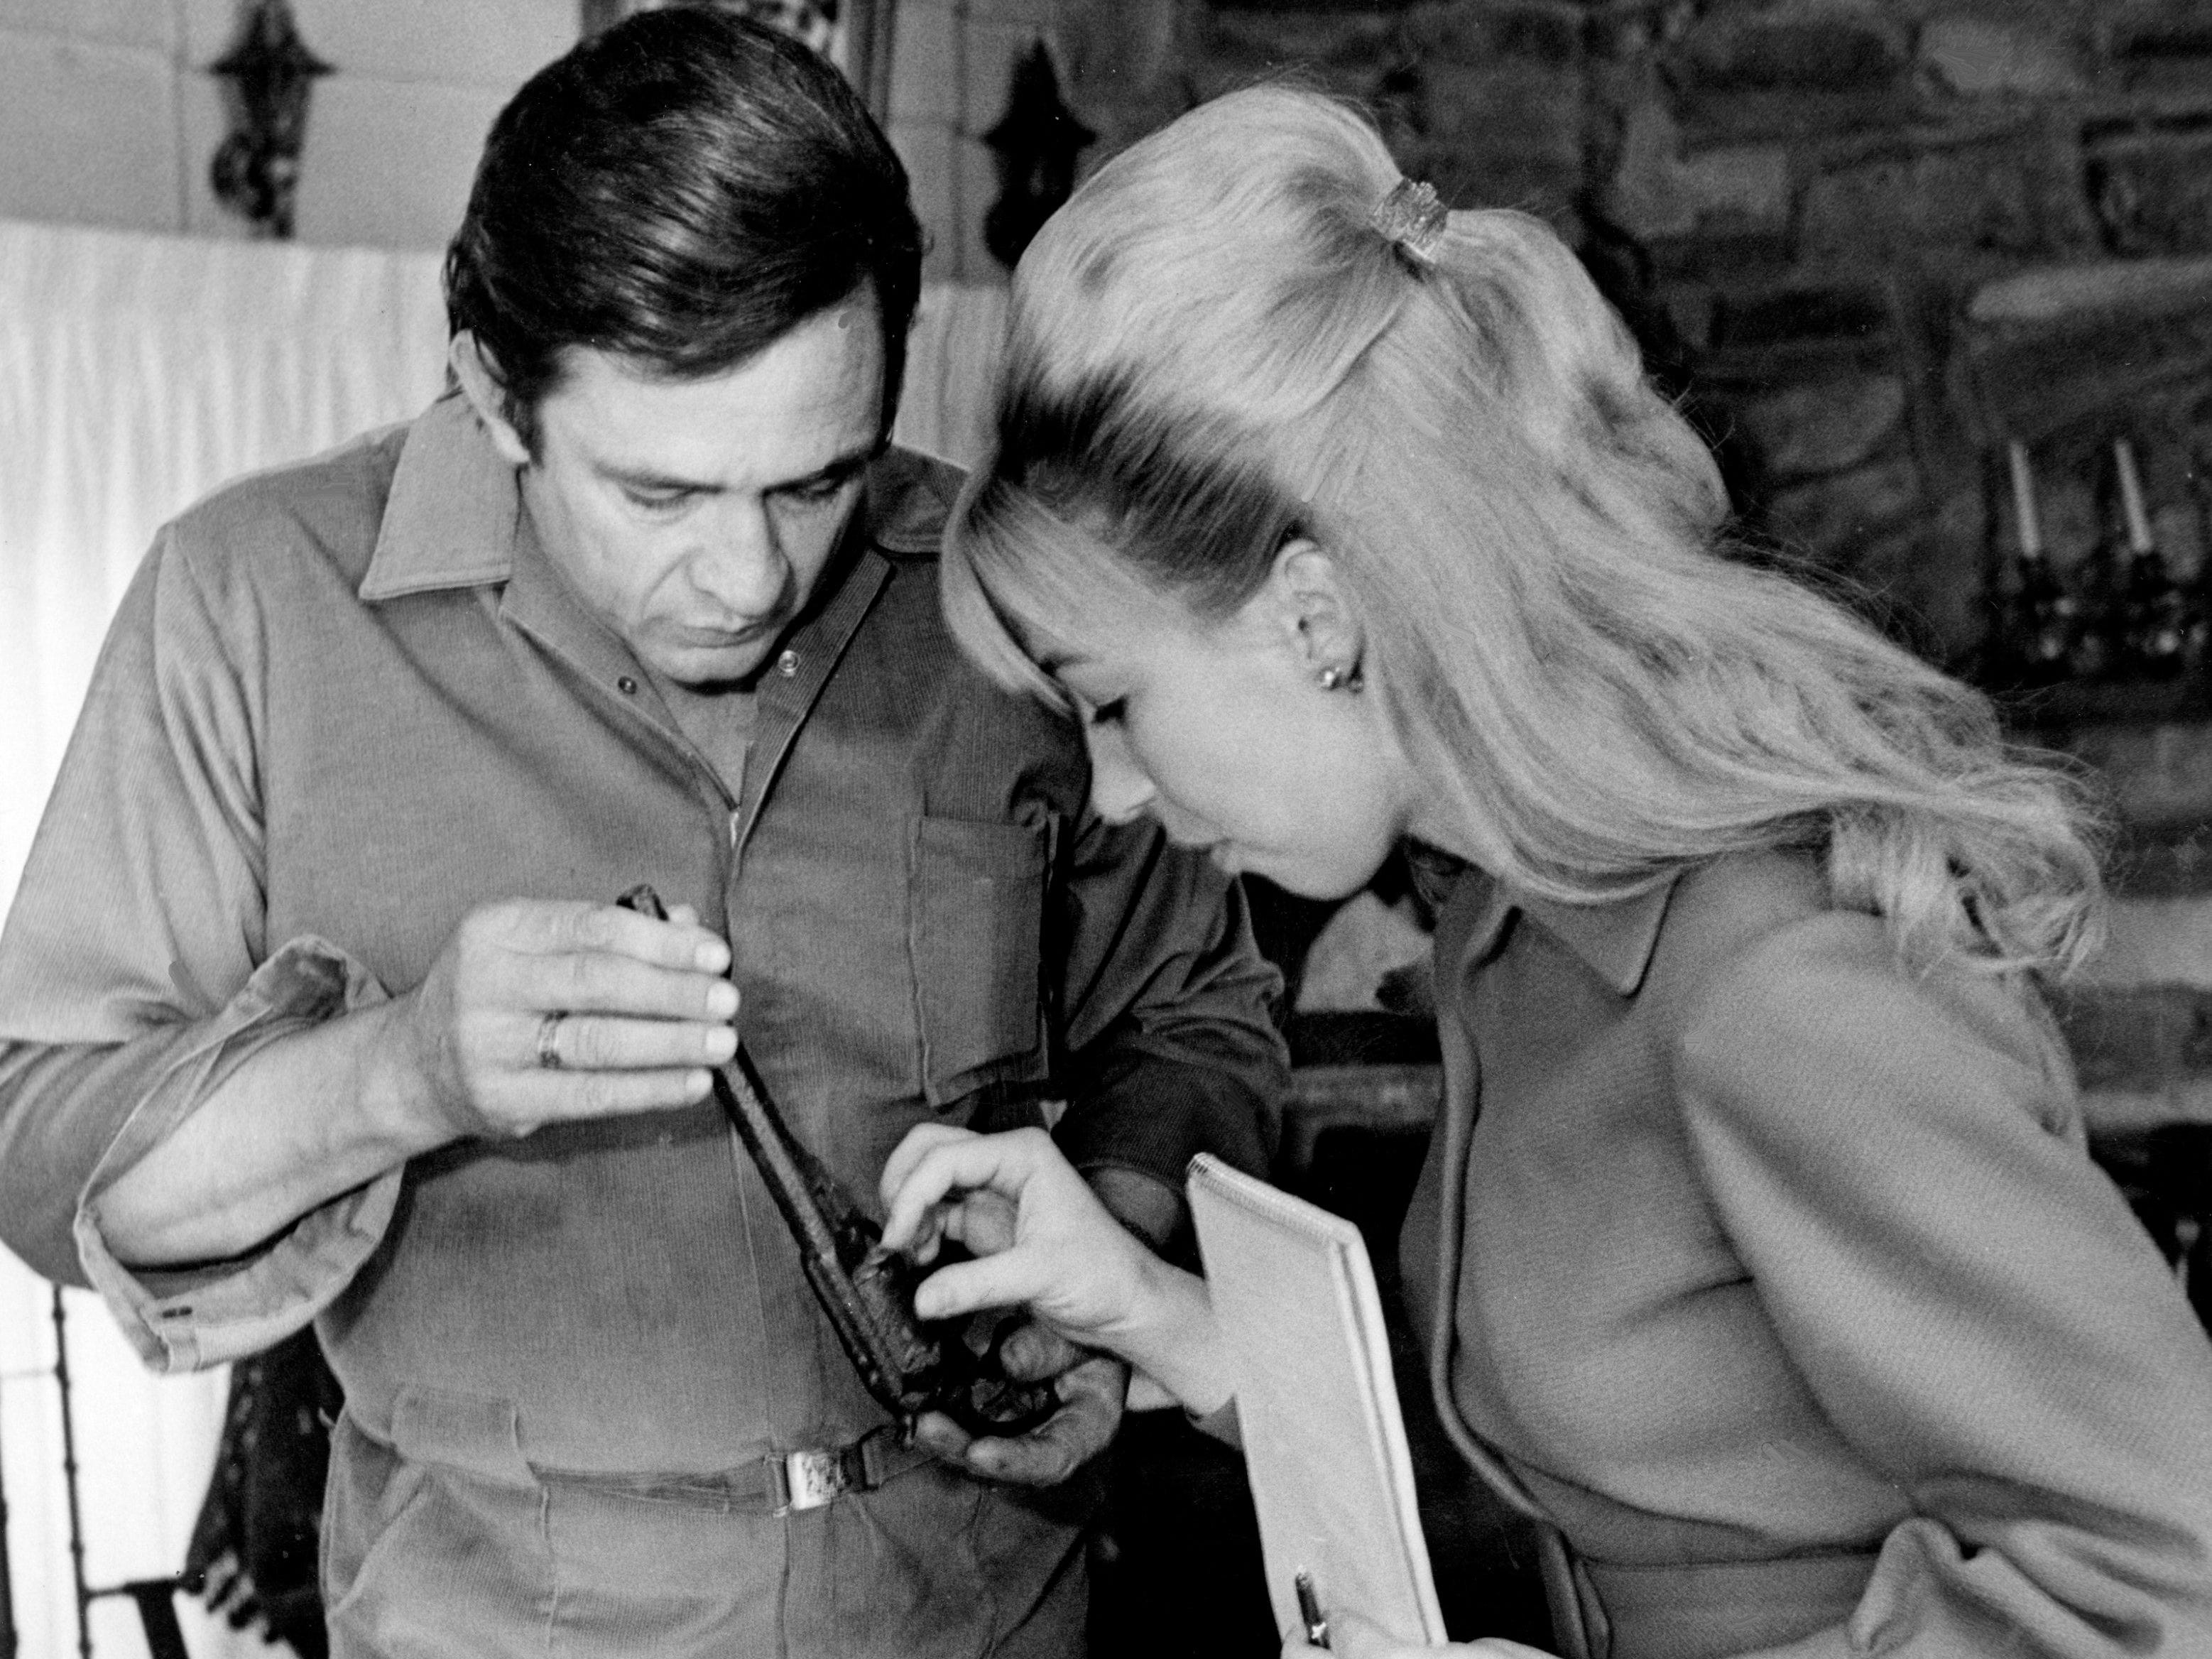 Johnny Cash shows off one of his antique pistols to Kathy Sawyer, a Tennessean reporter, April 19, 1969. Cash built a wagon-wheel showcase for his antique pistol collection, which includes mostly Colts and a couple of French dueling pistols.